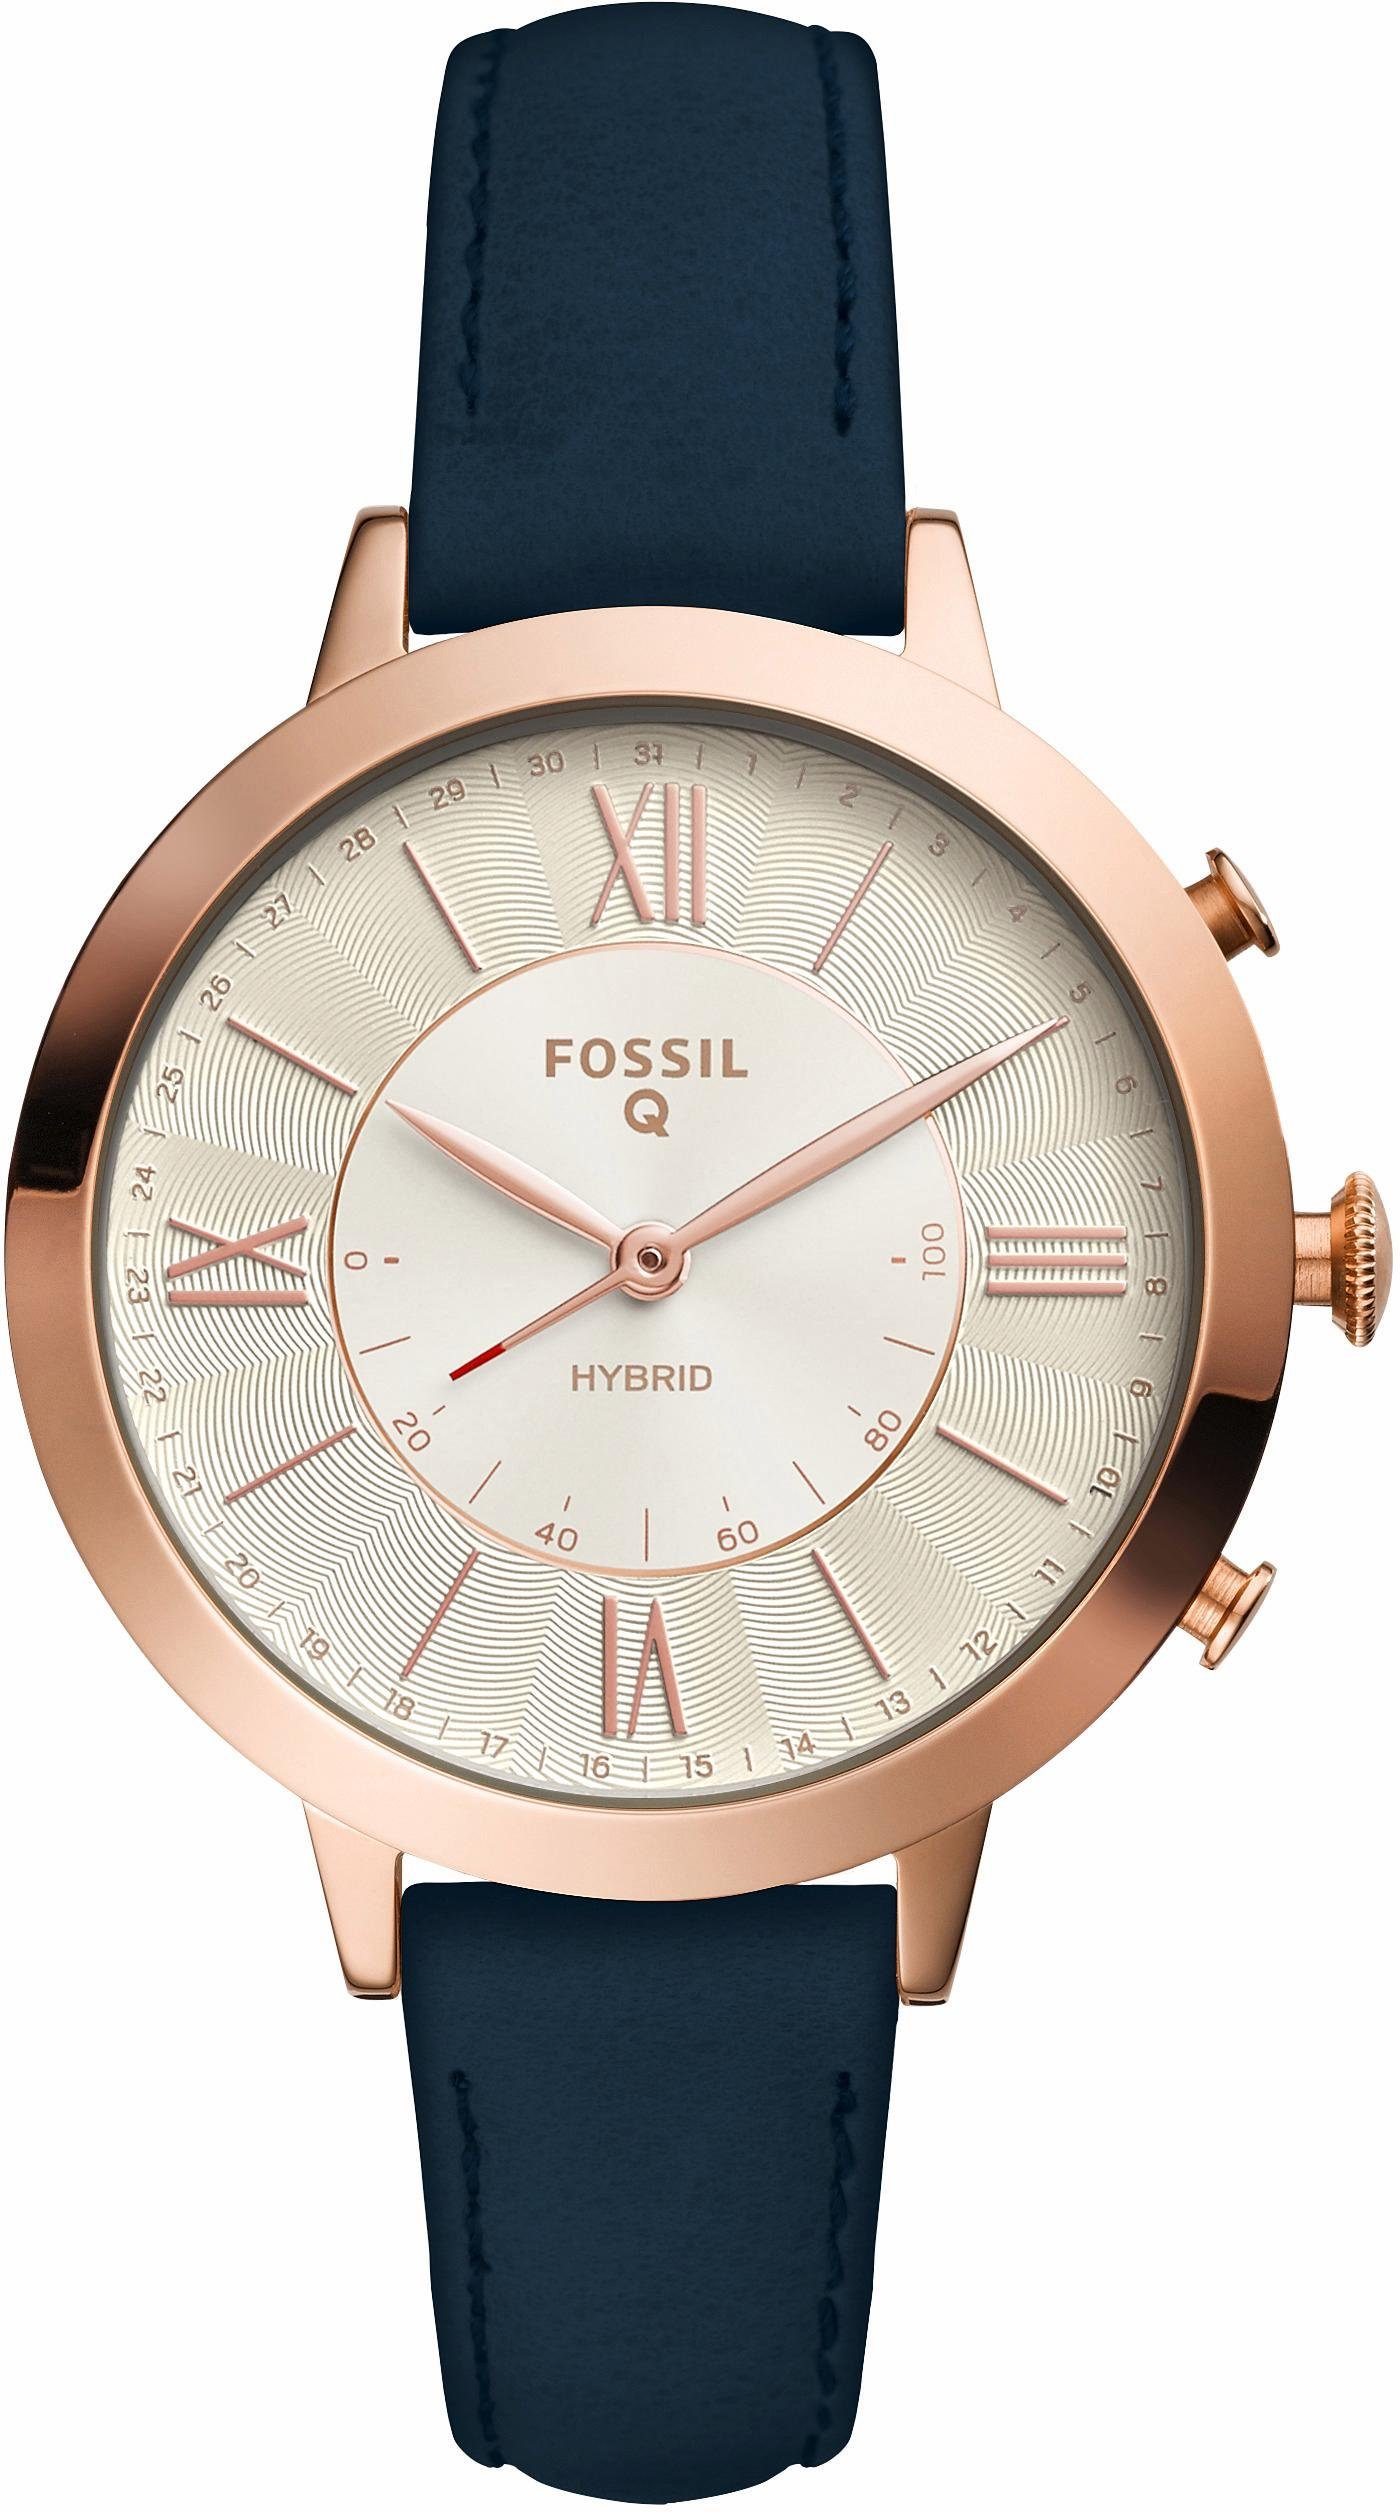 FOSSIL Q Q JACQUELINE, FTW5014 Smartwatch (Android Wear)